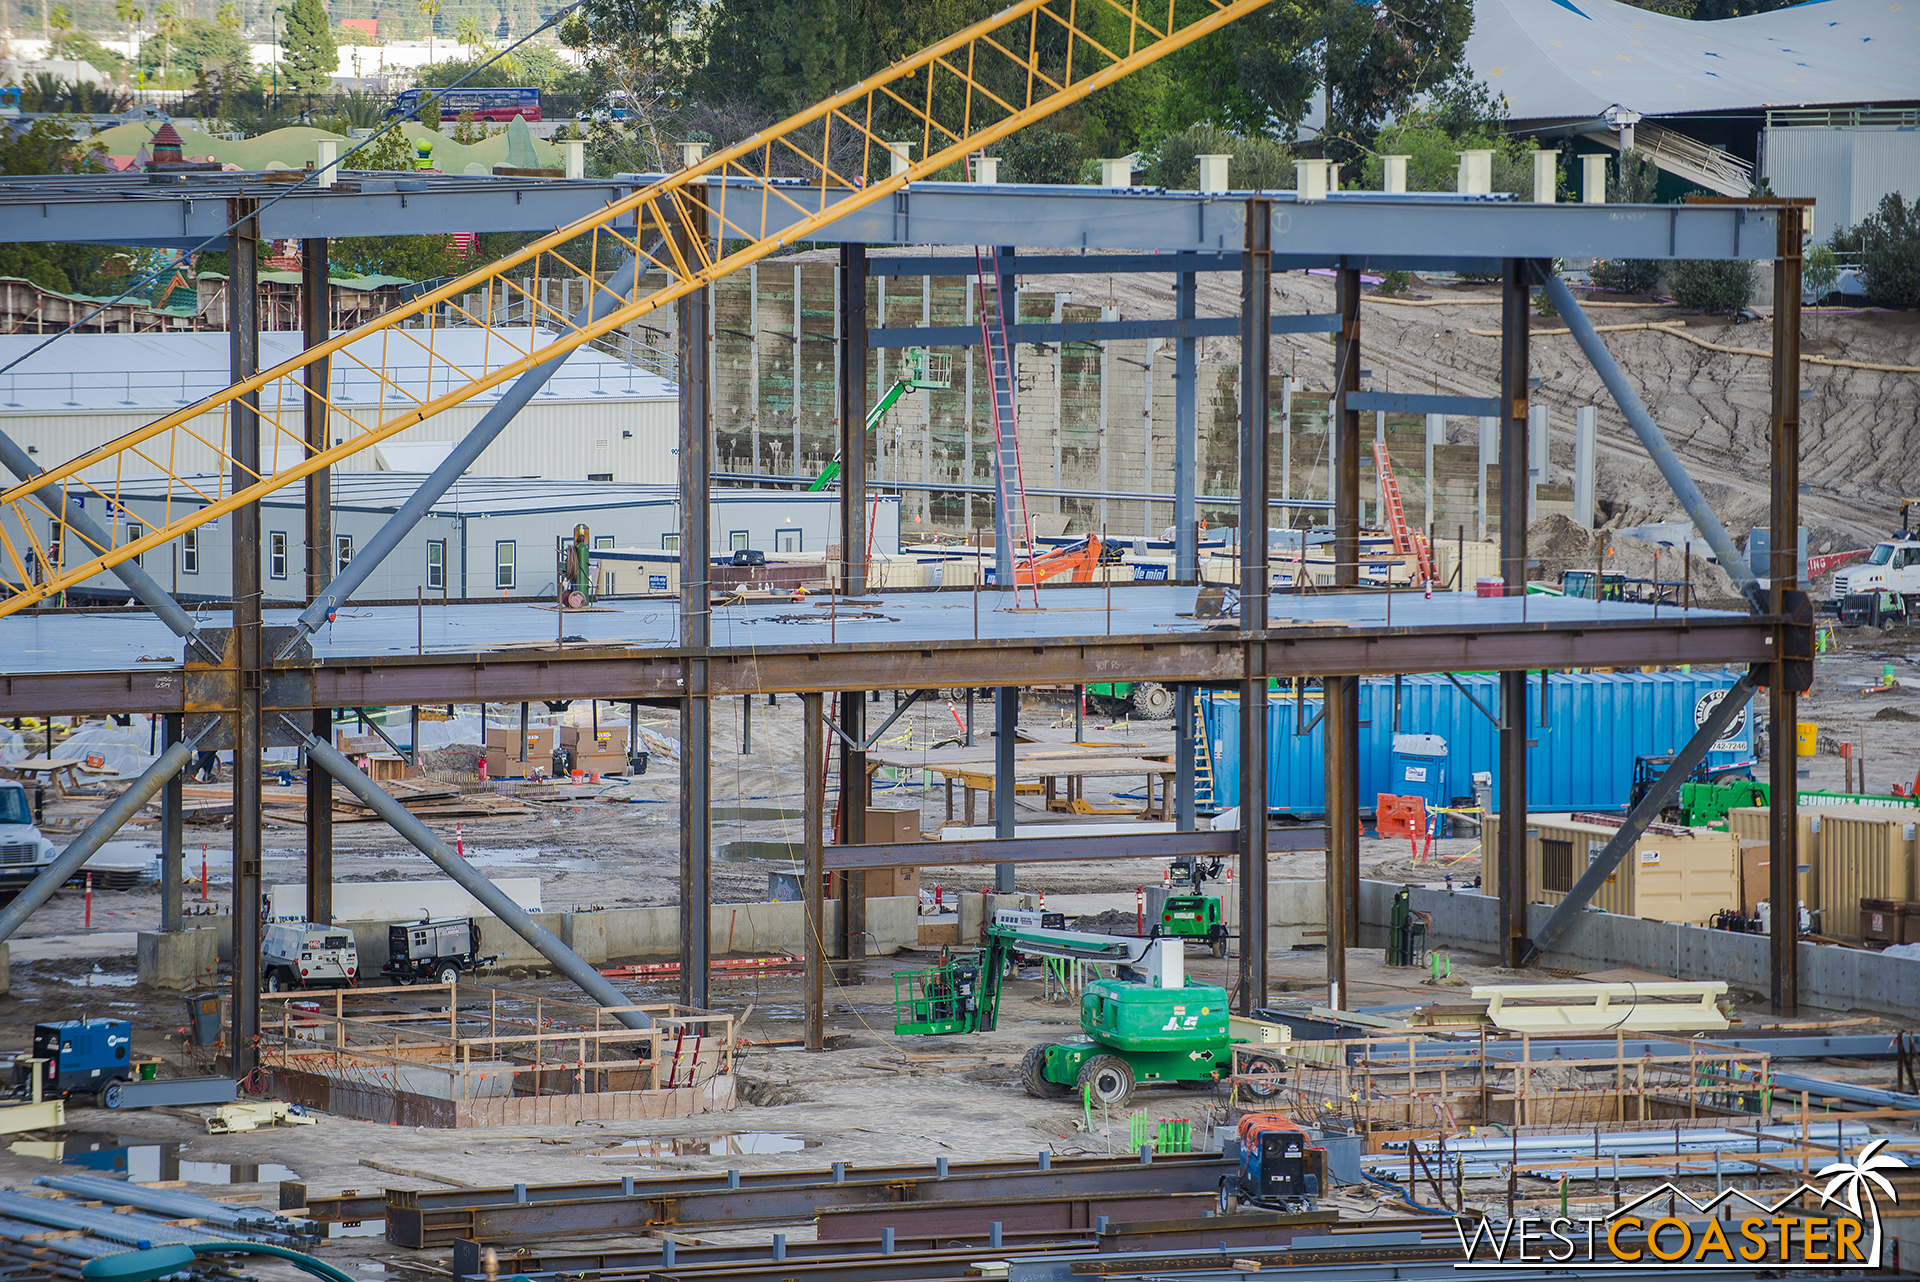 Over at the show building for E-Ticket #1, more steel has gone up.